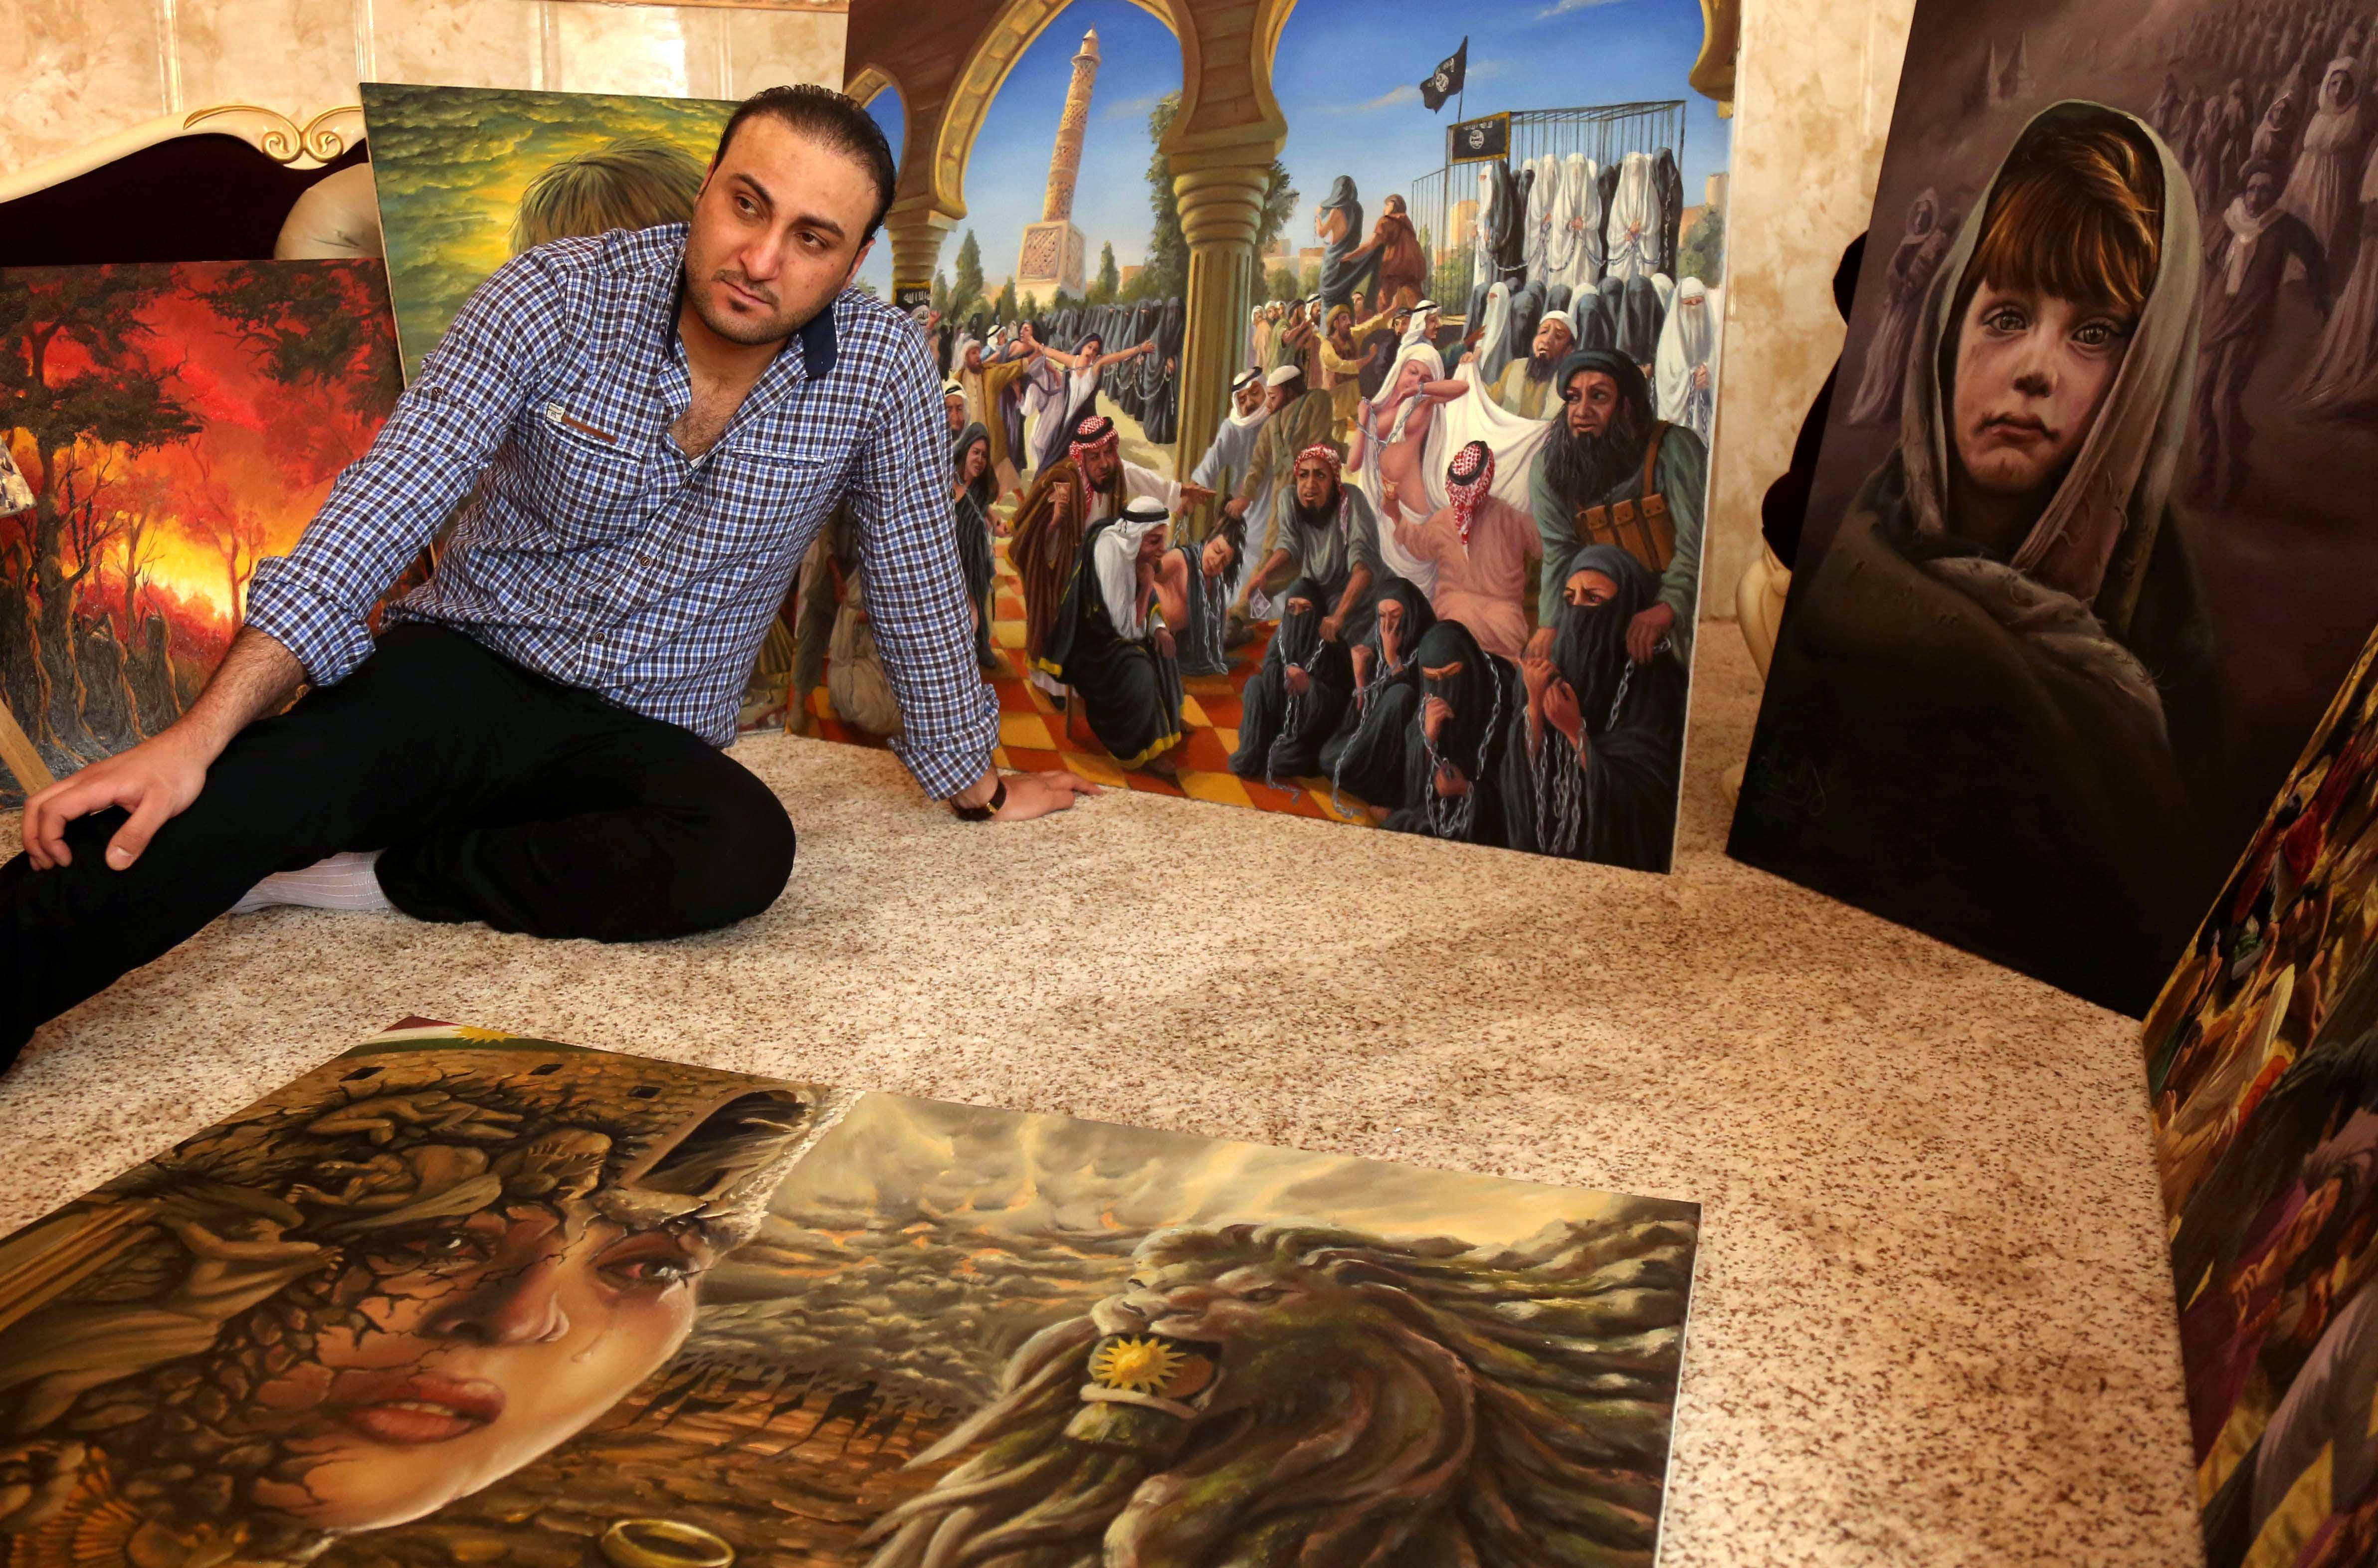 Iraqi painter Ammar Salim poses near some of his art pieces at his workshop in the Iraqi Kurdish city of Dohuk, on March 26, 2015. (AFP)